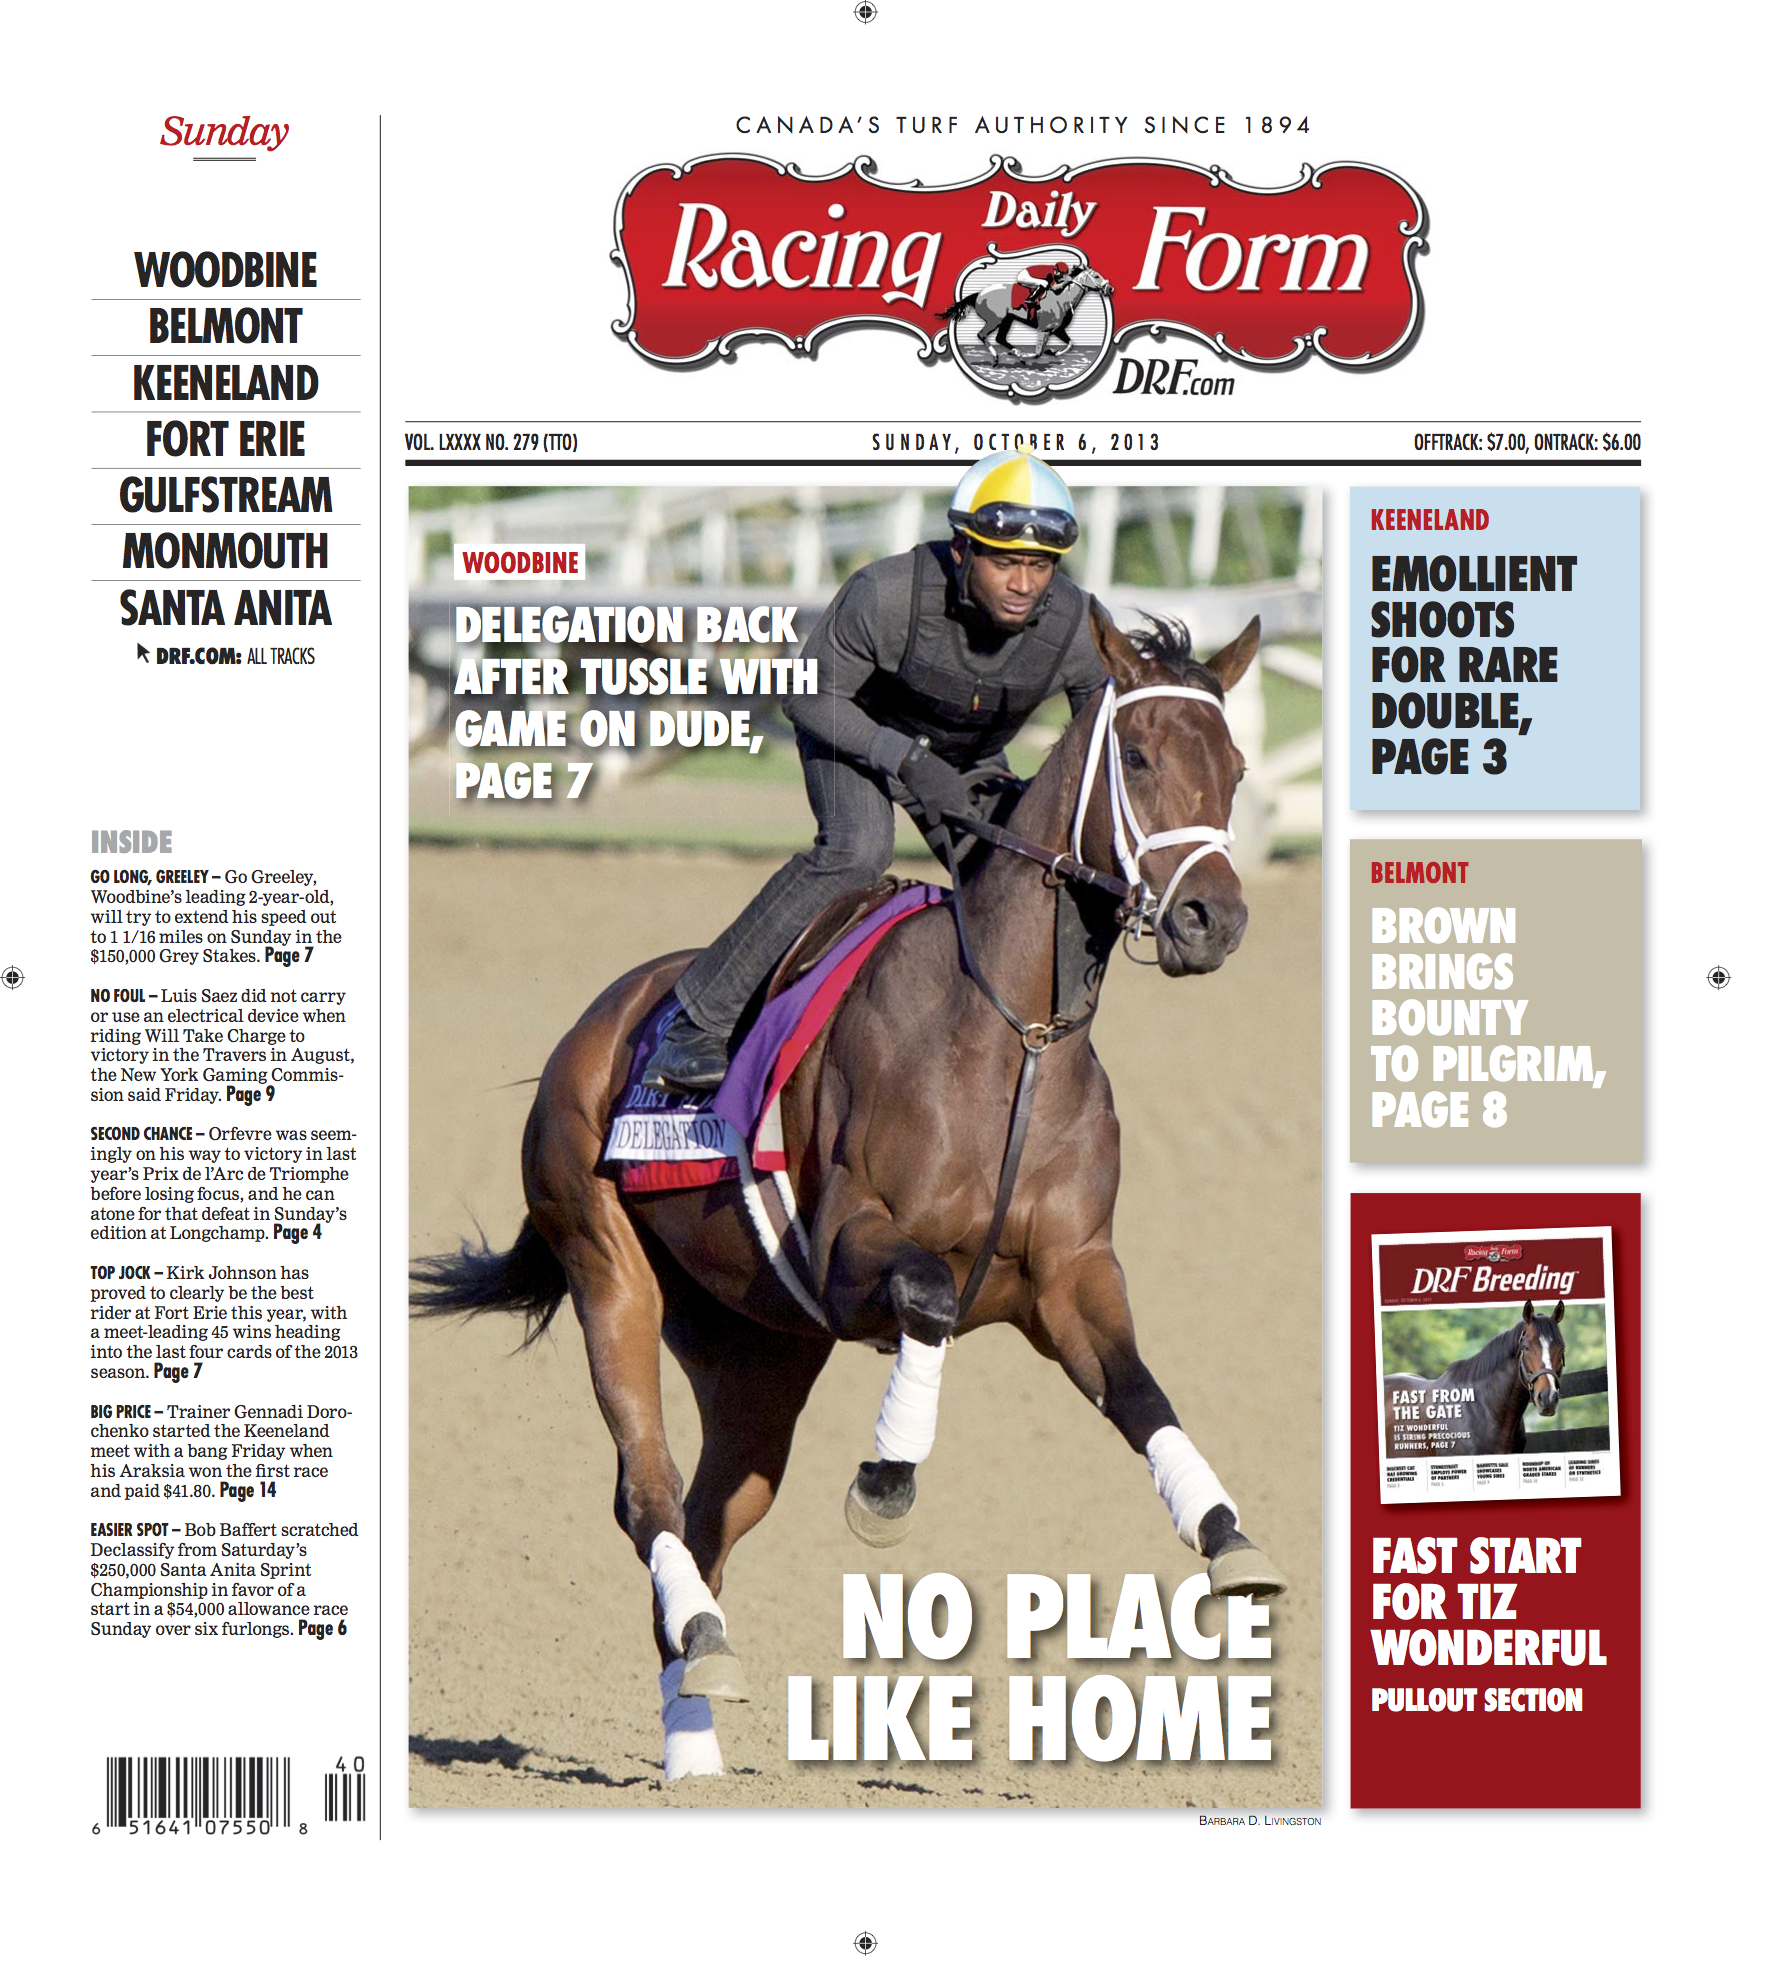 Daily Racing Form Cover Page